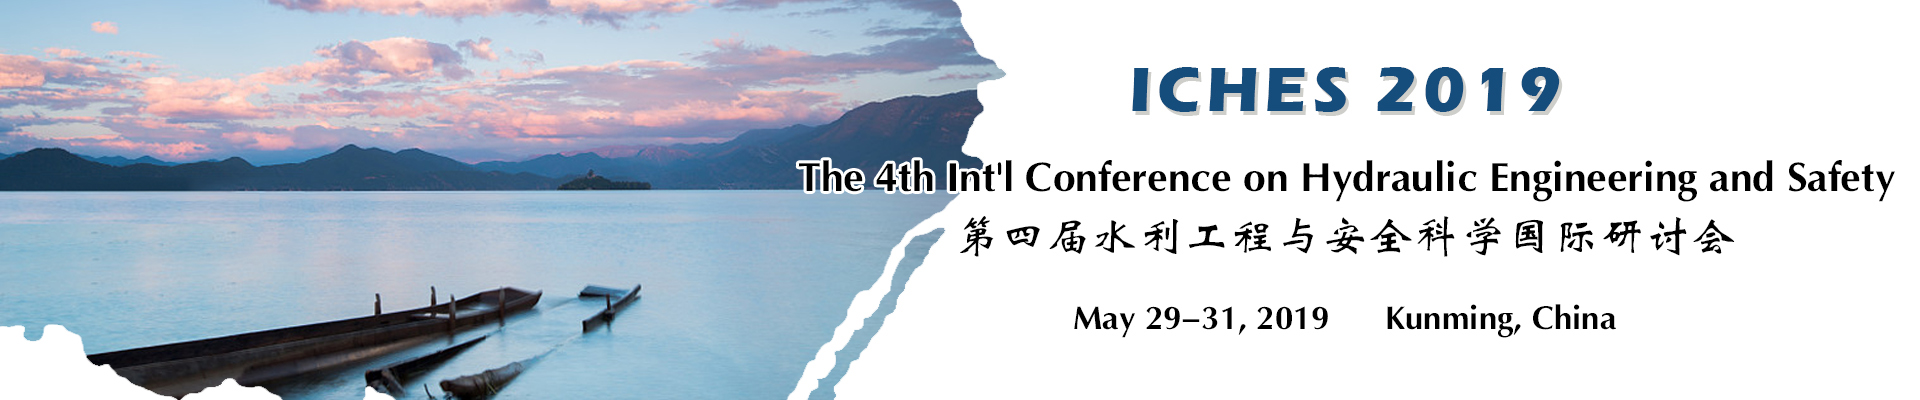 The 4th Int'l Conference on Hydraulic Engineering and Safety (ICHES 2019), Kunming, Yunnan, China